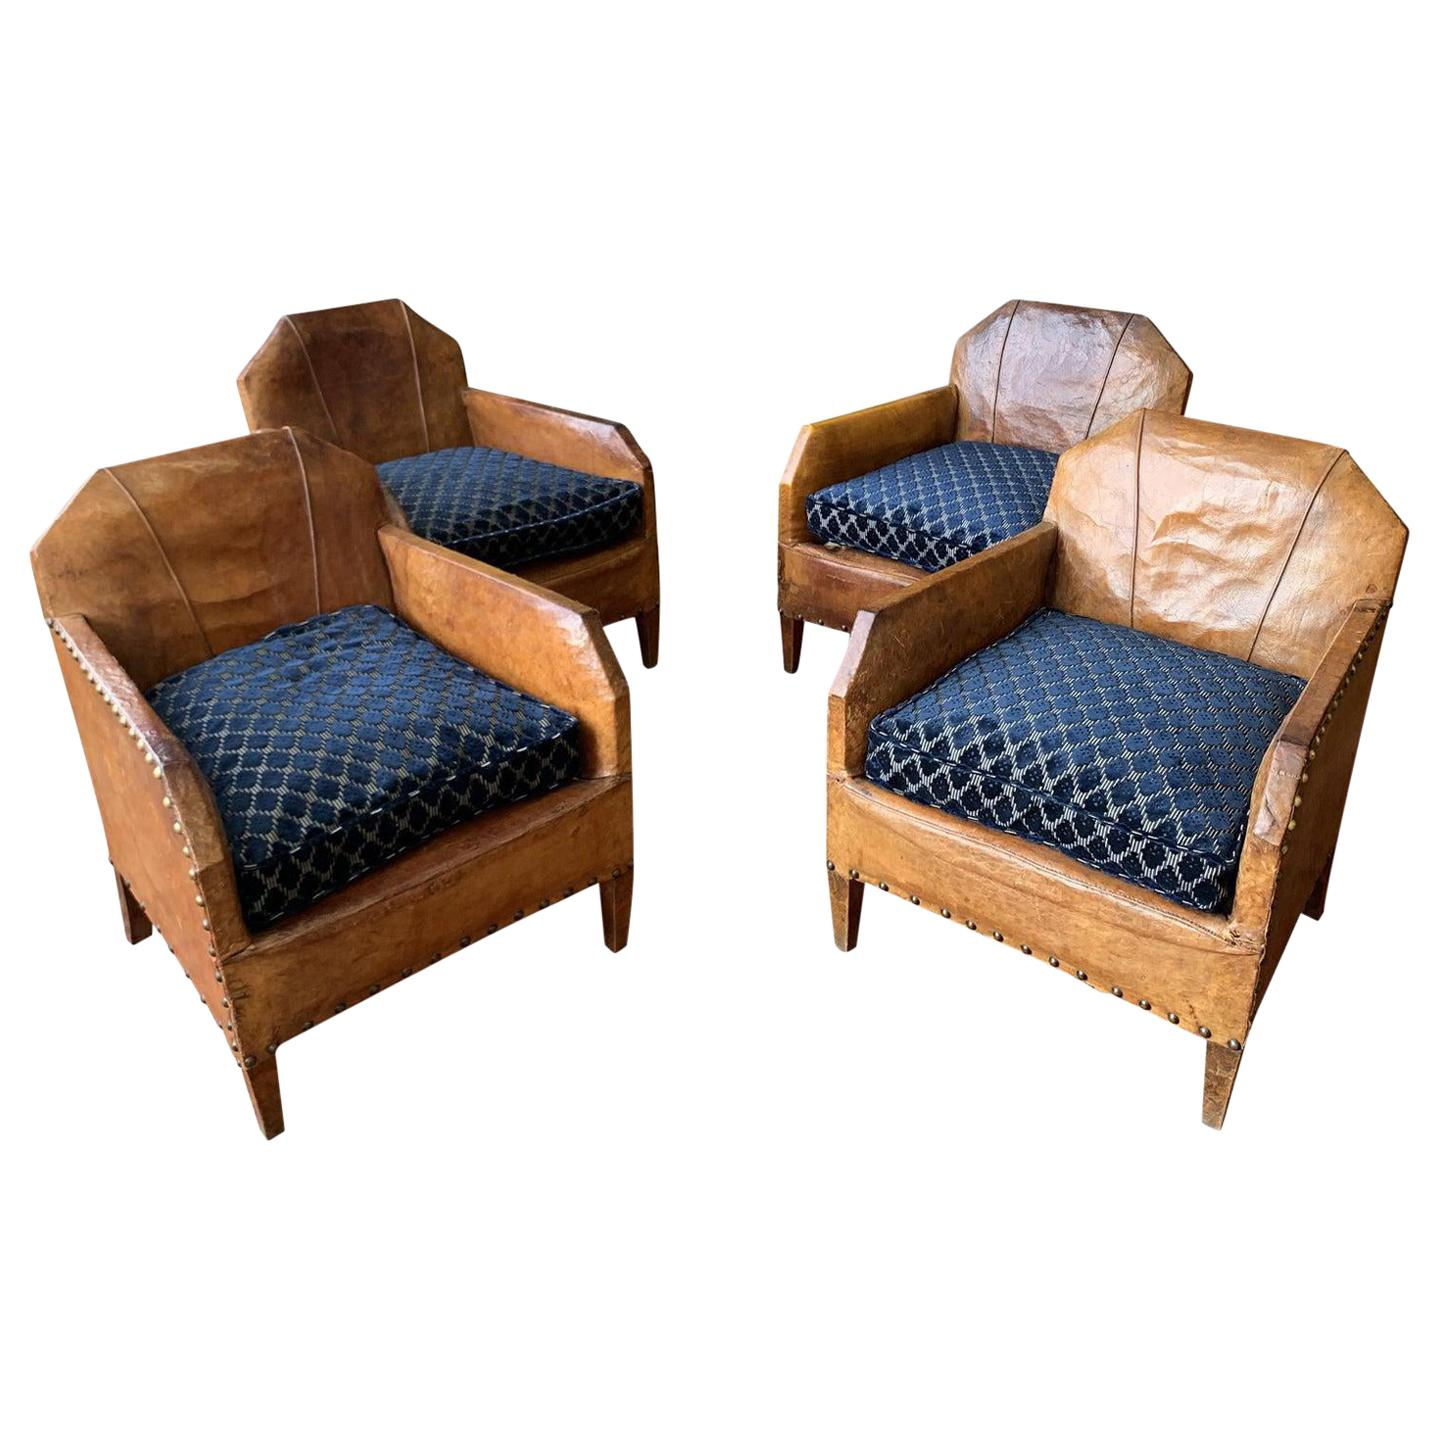 1930s Vintage Art Deco French Leather Club Chairs, Set of 4